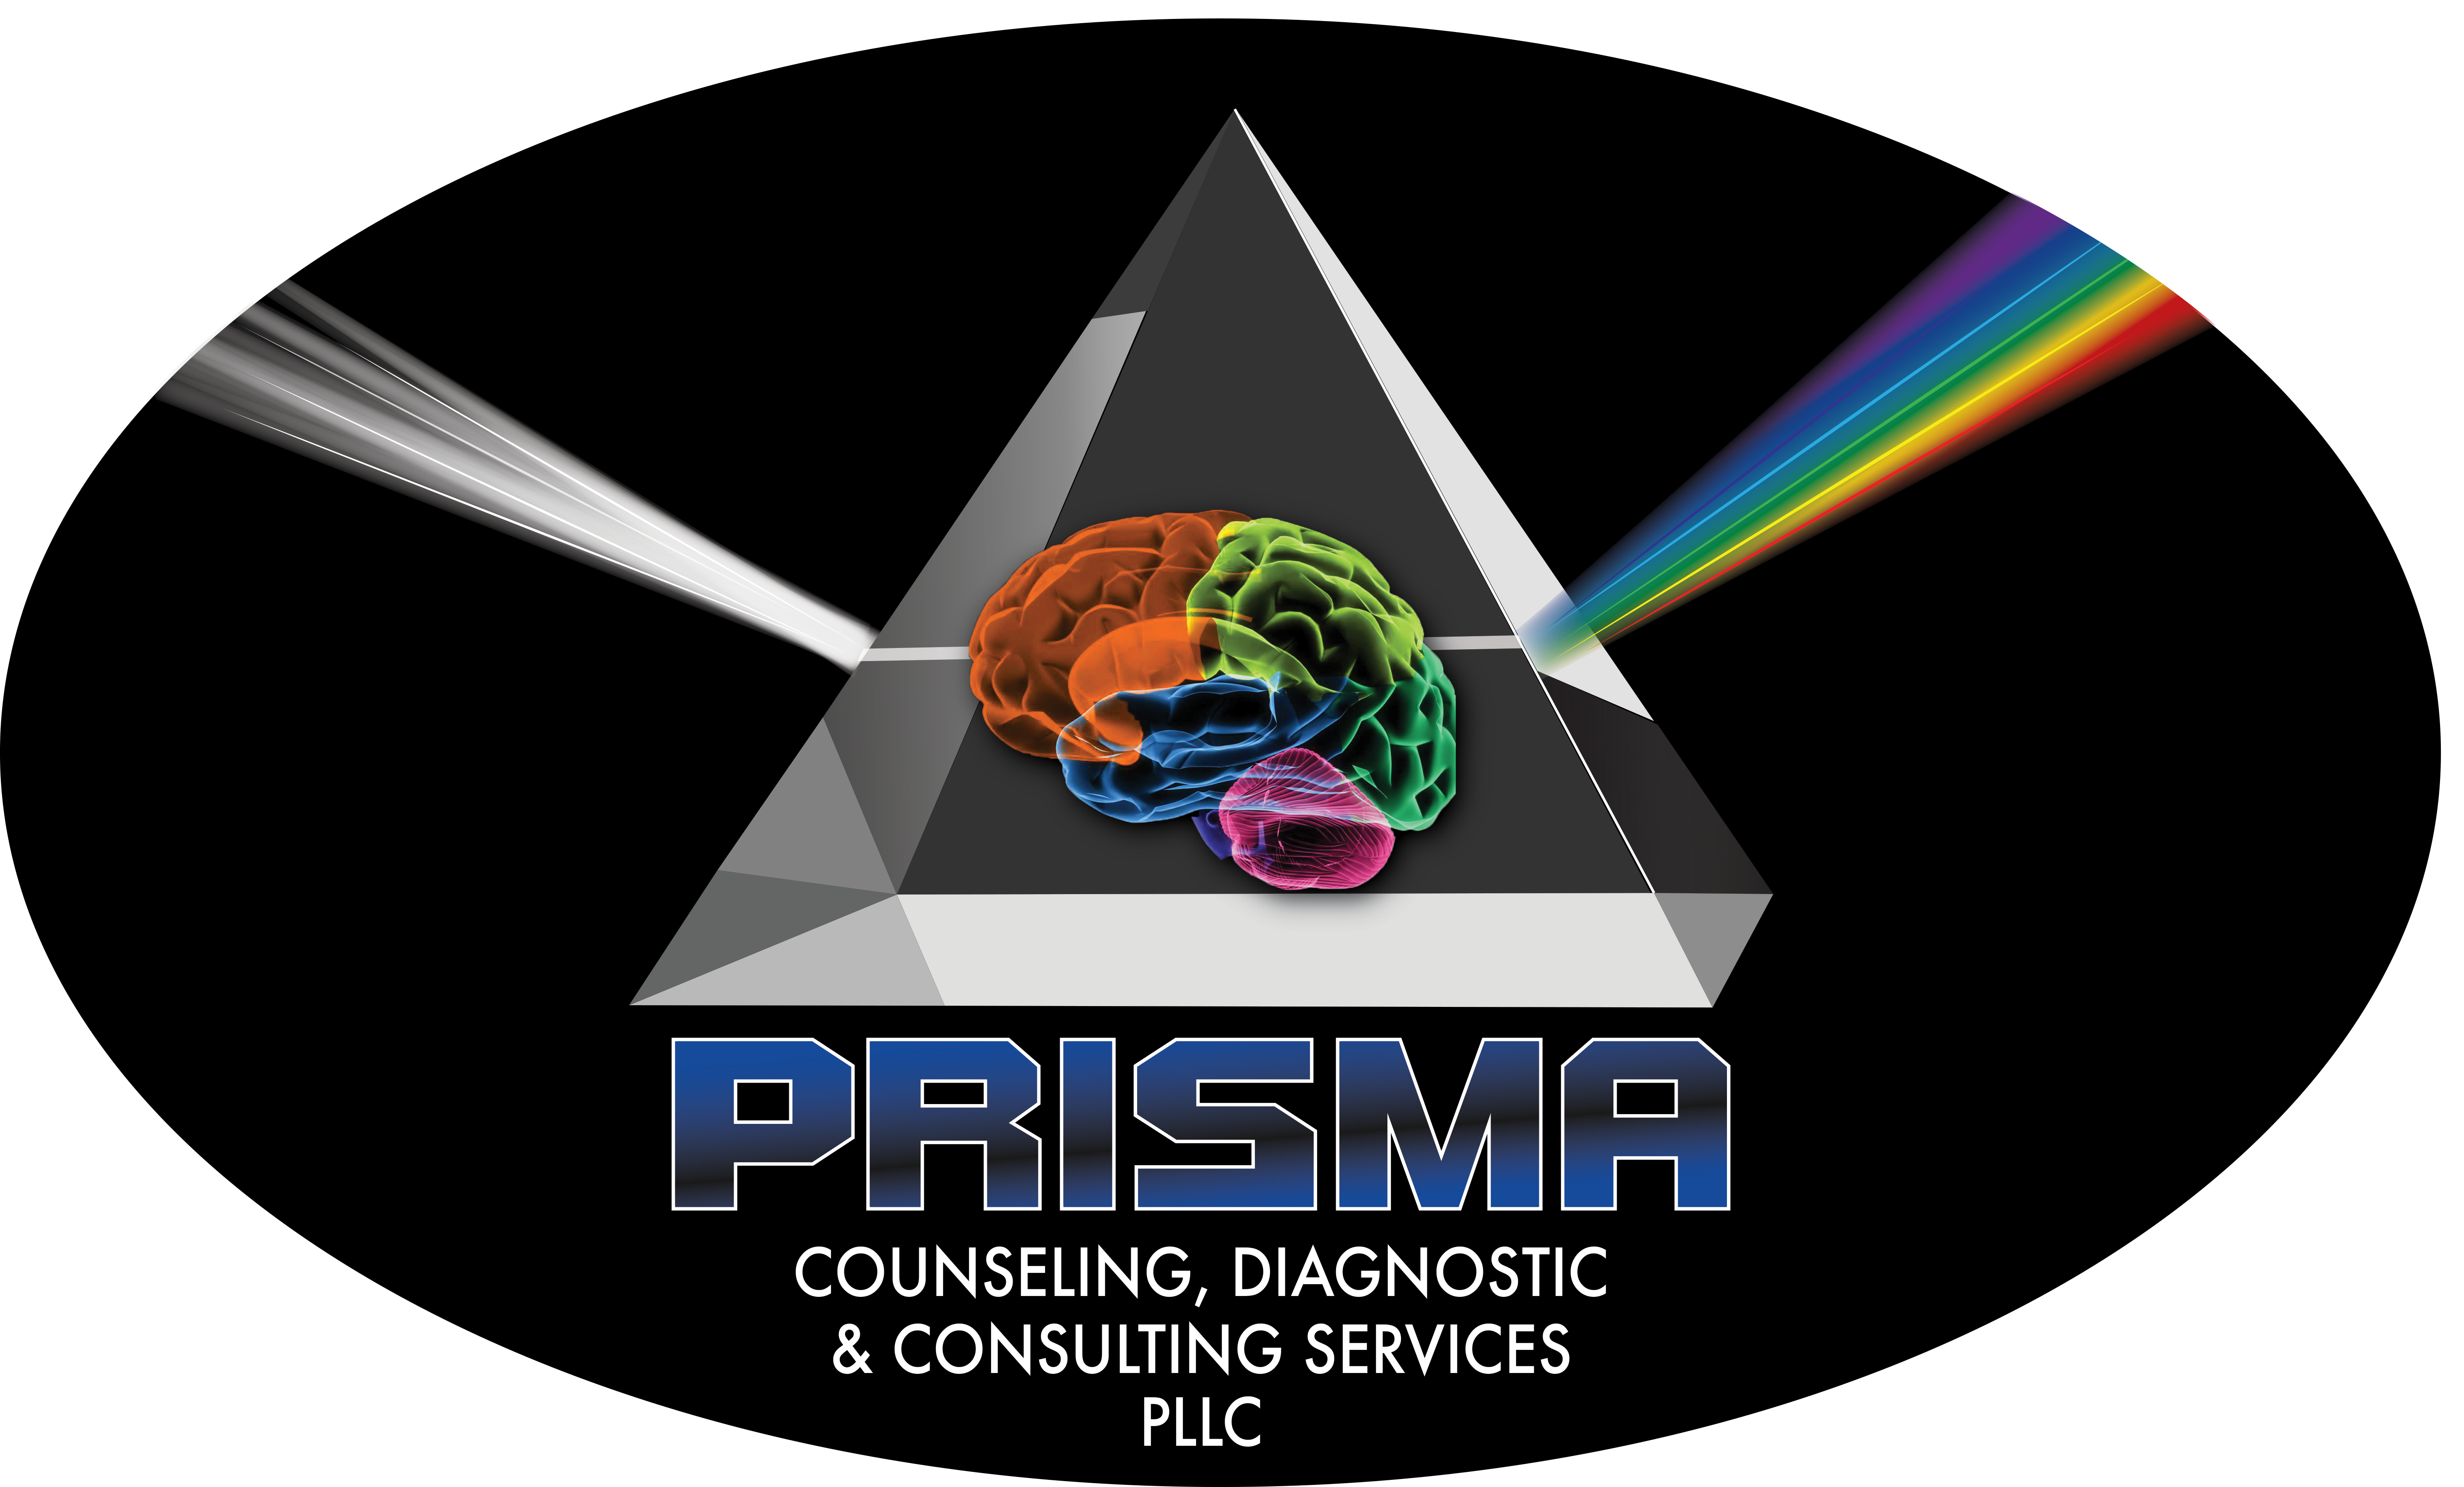 Prisma Counseling, Diagnostic, & Consulting Services, PLLC